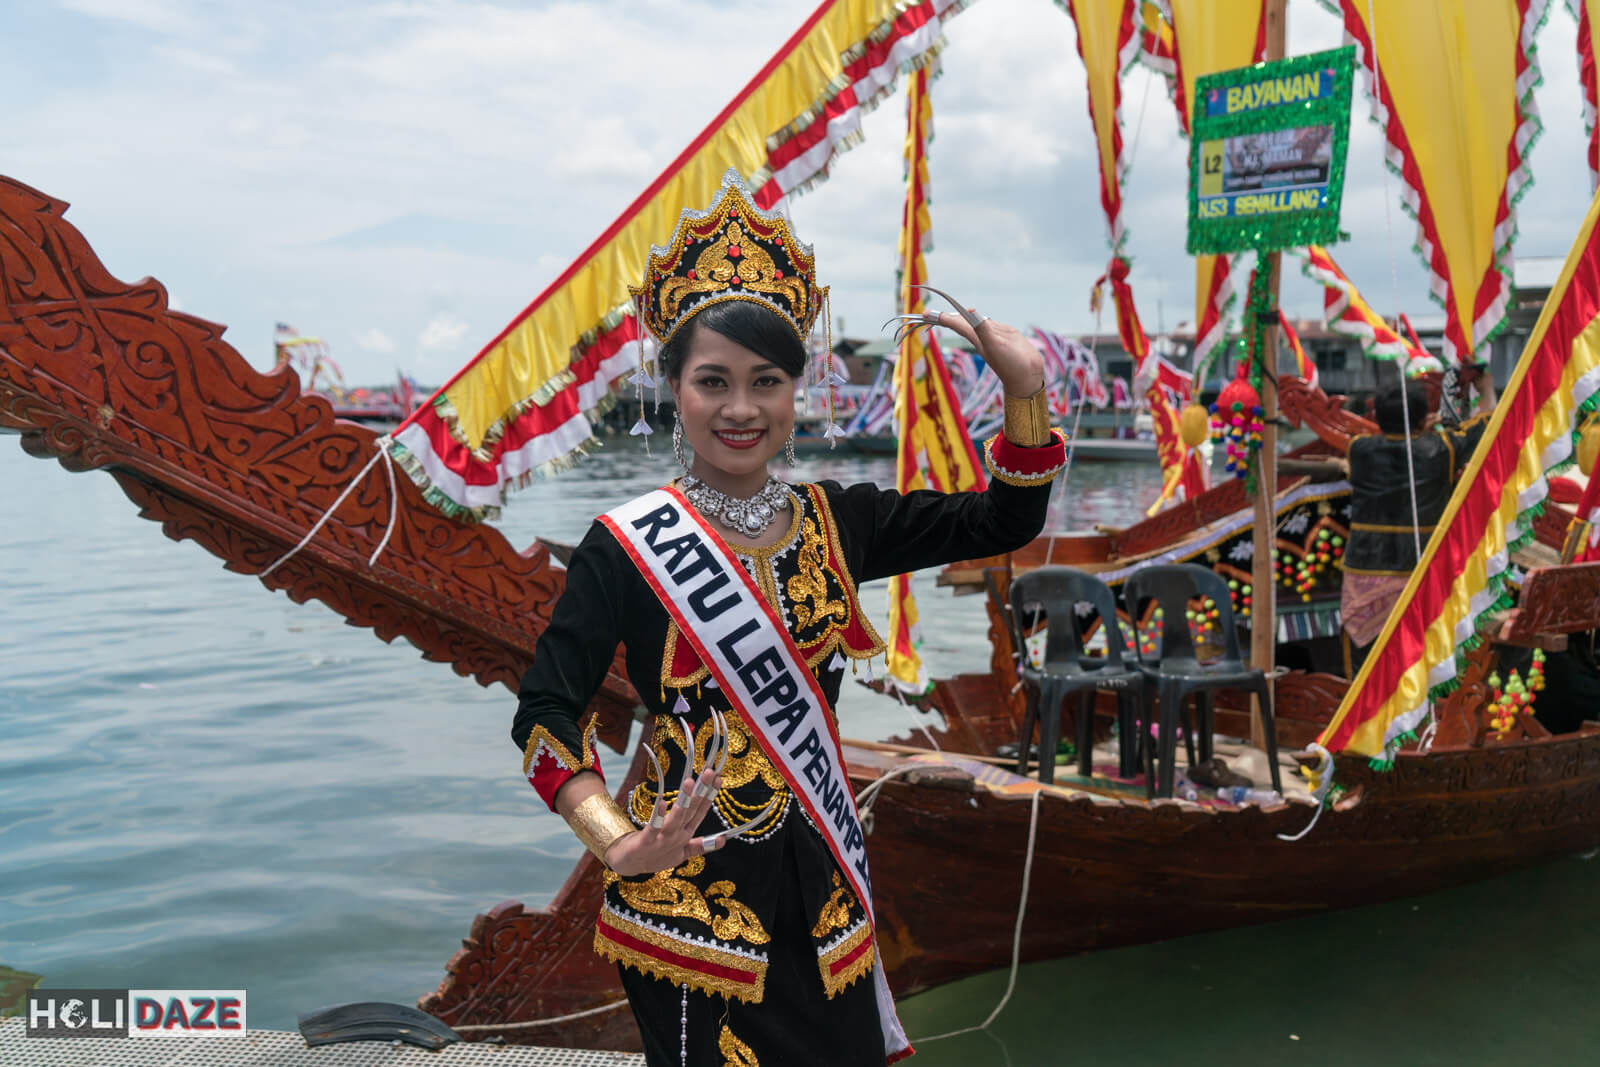 Bajau girl performing traditional dance at the Regatta Lepa festival in Semporna, Sabah